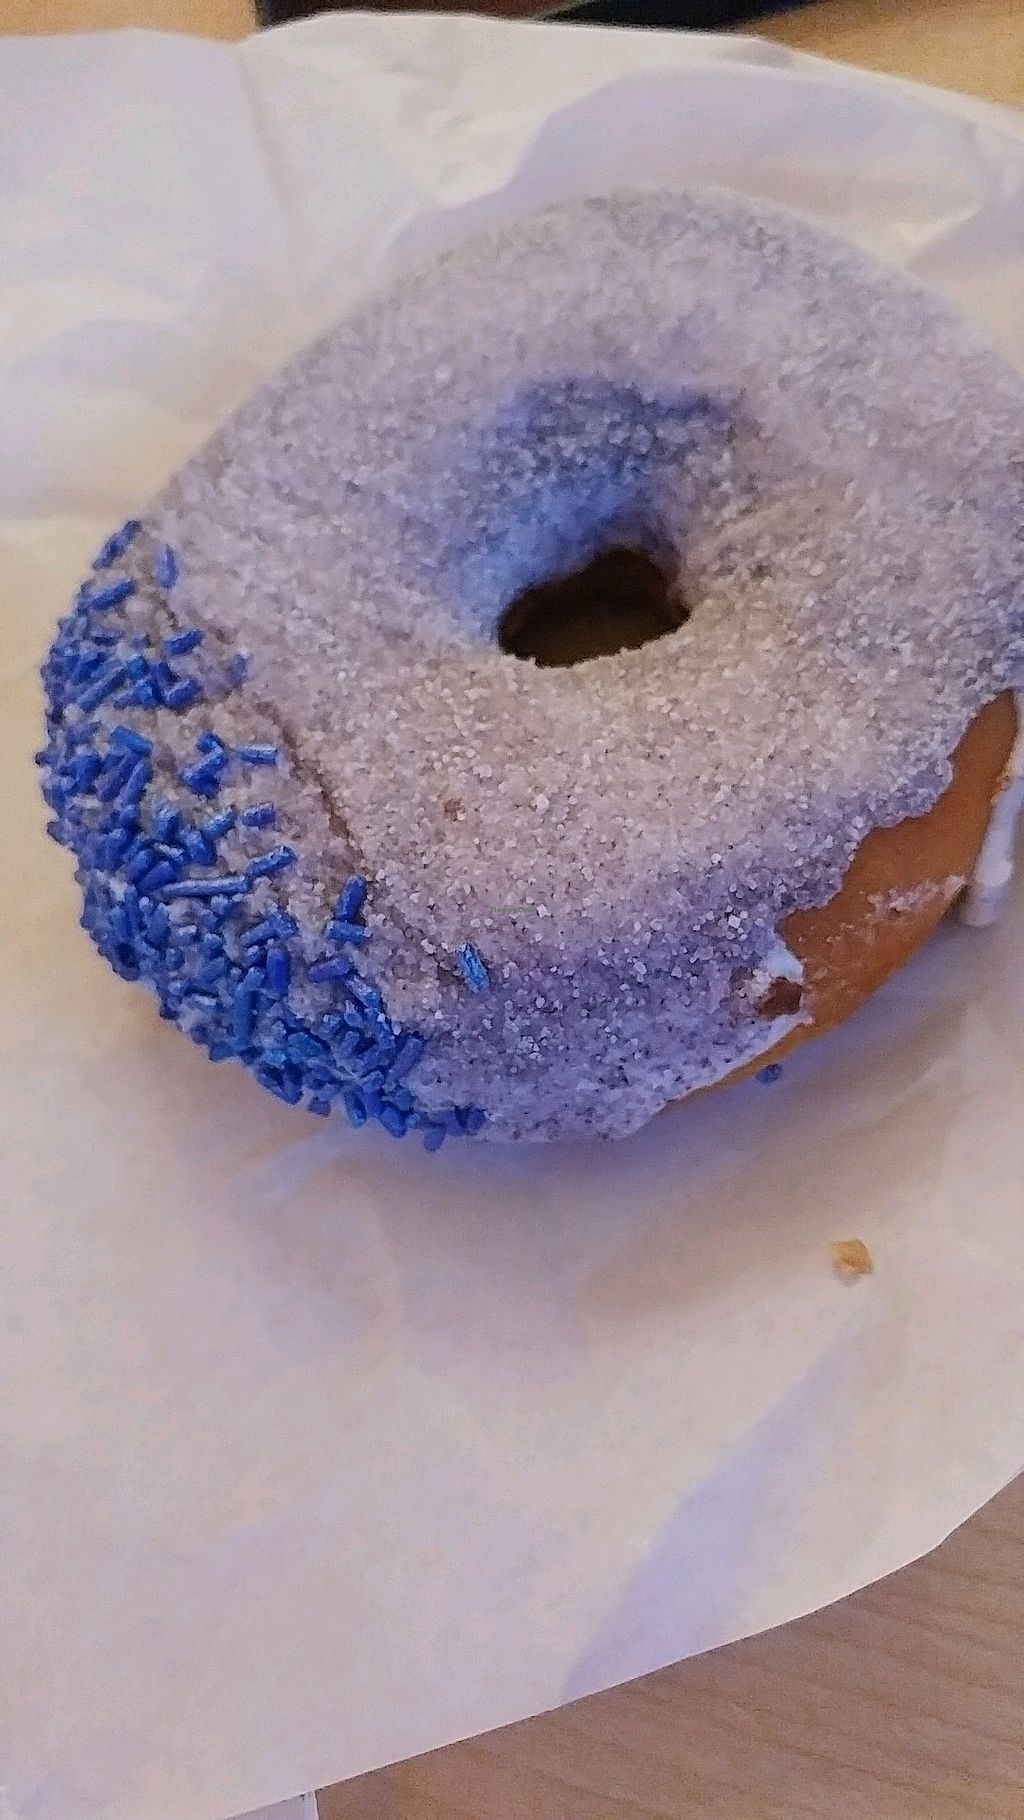 """Photo of Voodoo Doughnut Too  by <a href=""""/members/profile/krimaro"""">krimaro</a> <br/>grape <br/> April 8, 2018  - <a href='/contact/abuse/image/33115/382396'>Report</a>"""